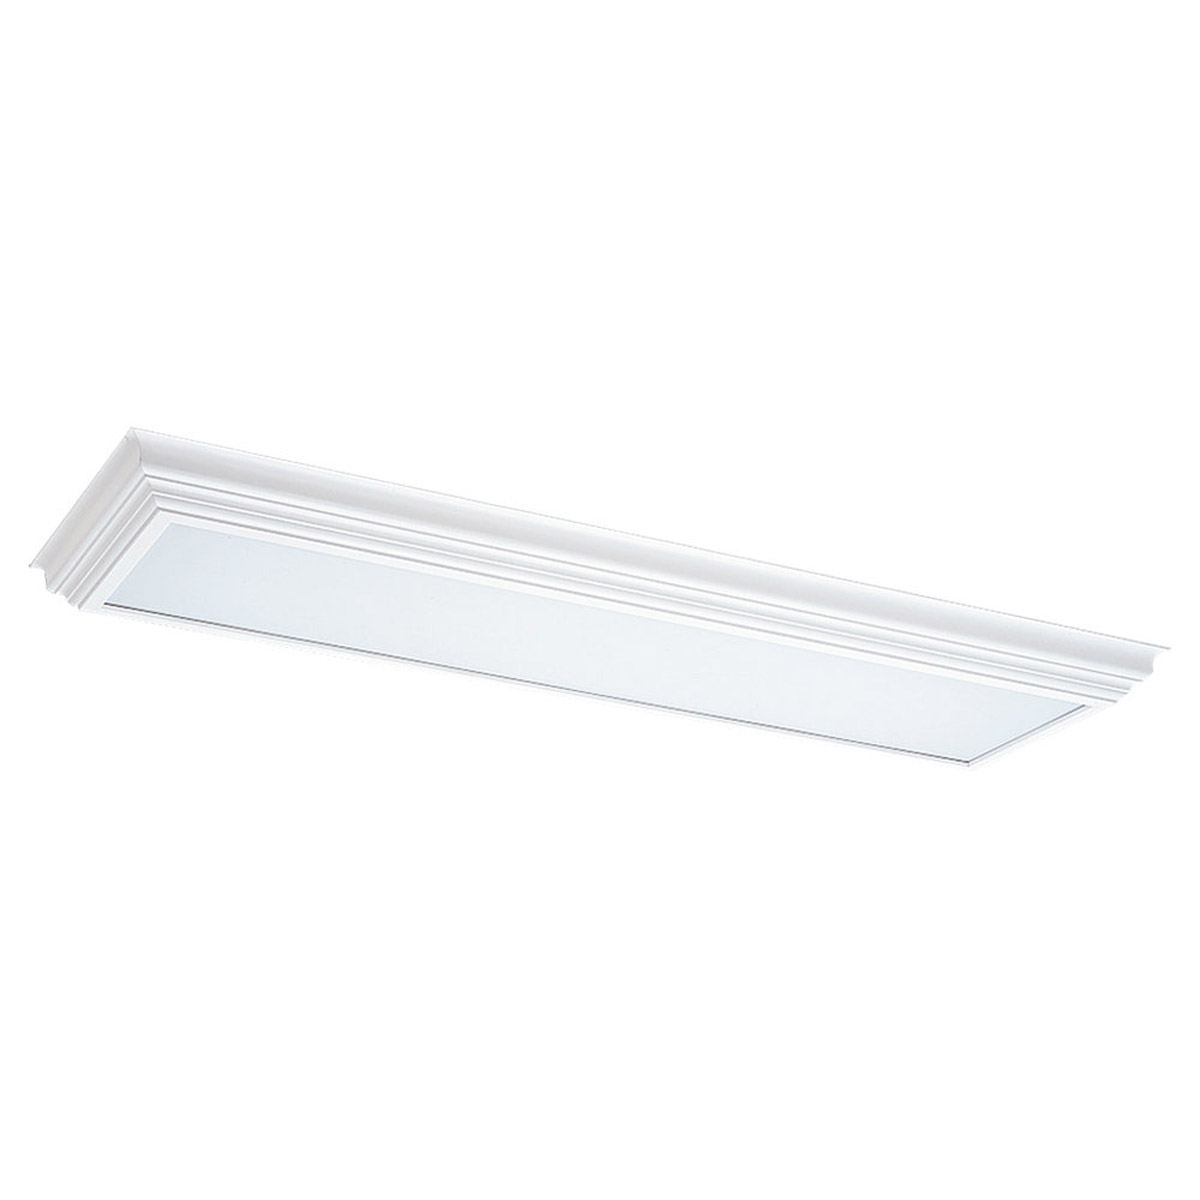 Sea Gull Lighting Signature Fluorescent Trim Only in White 5978-15